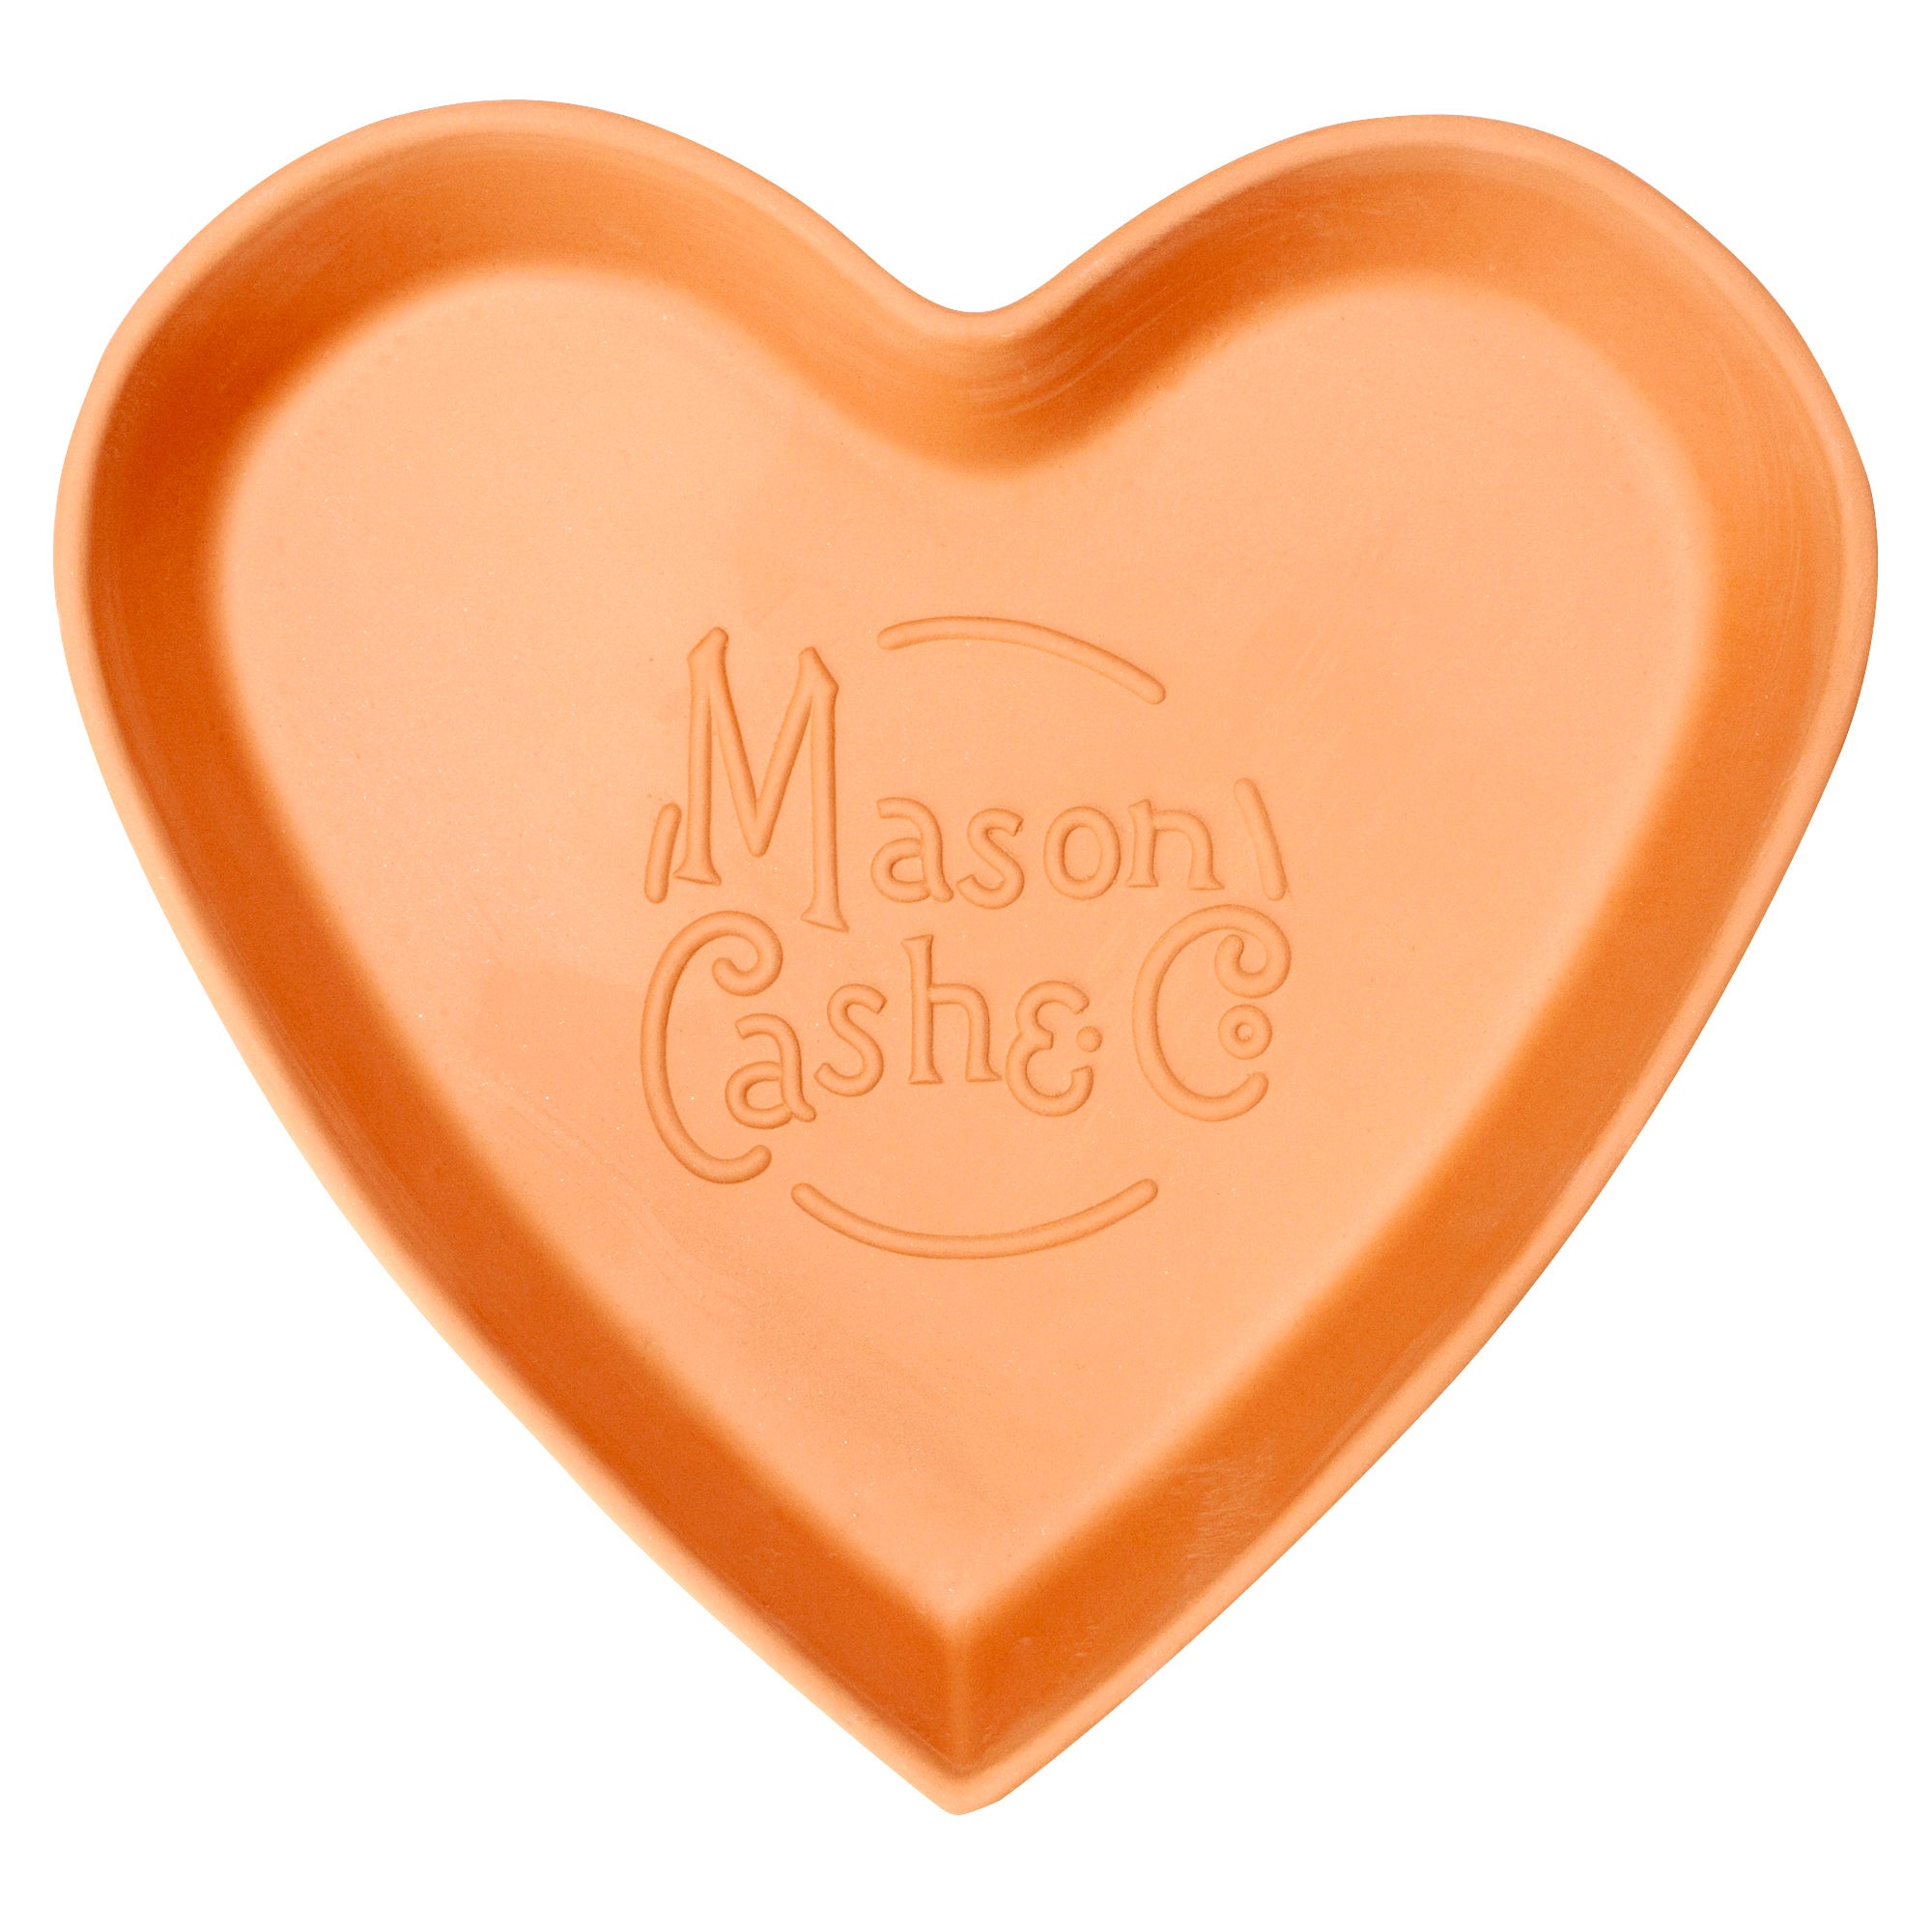 Mason Cash Heart Shaped Tear and Share Dish